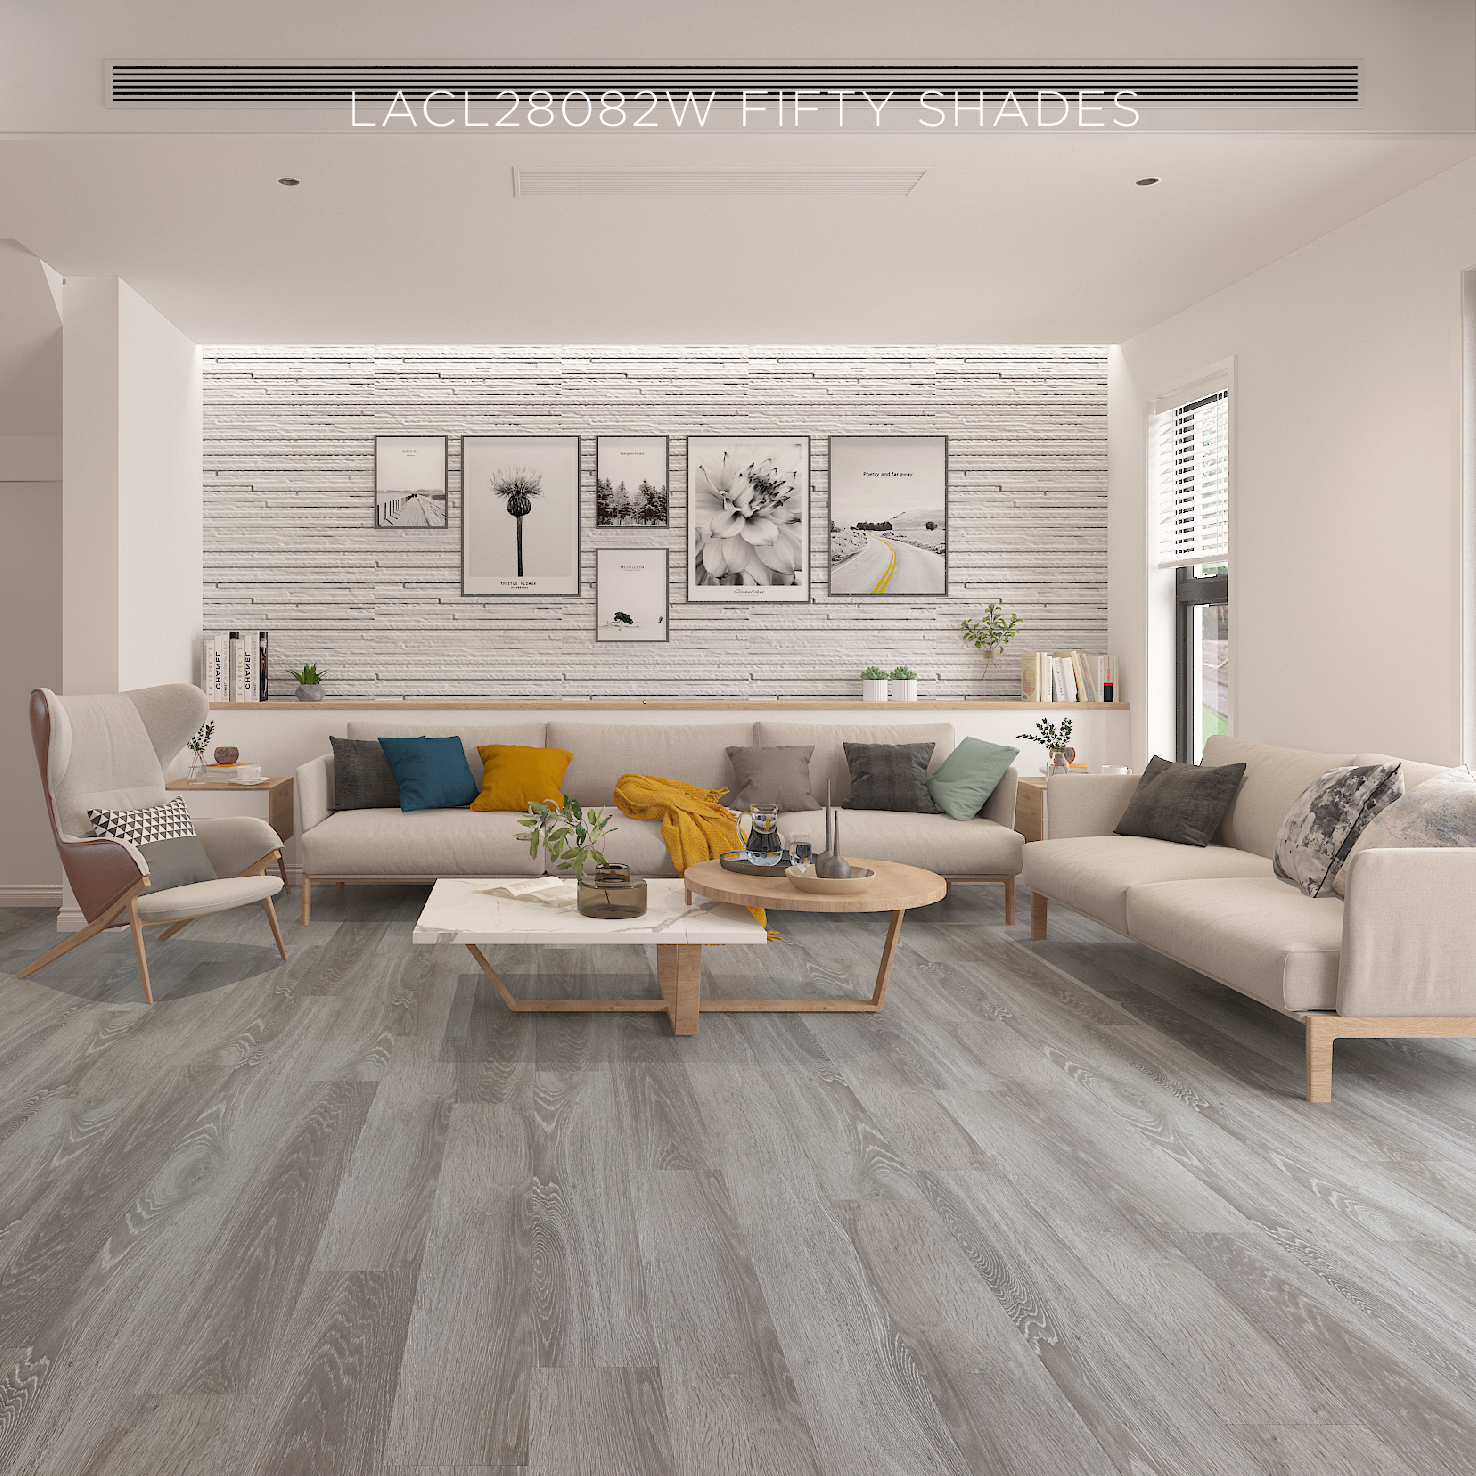 LACL28082W Fifty Shades-01